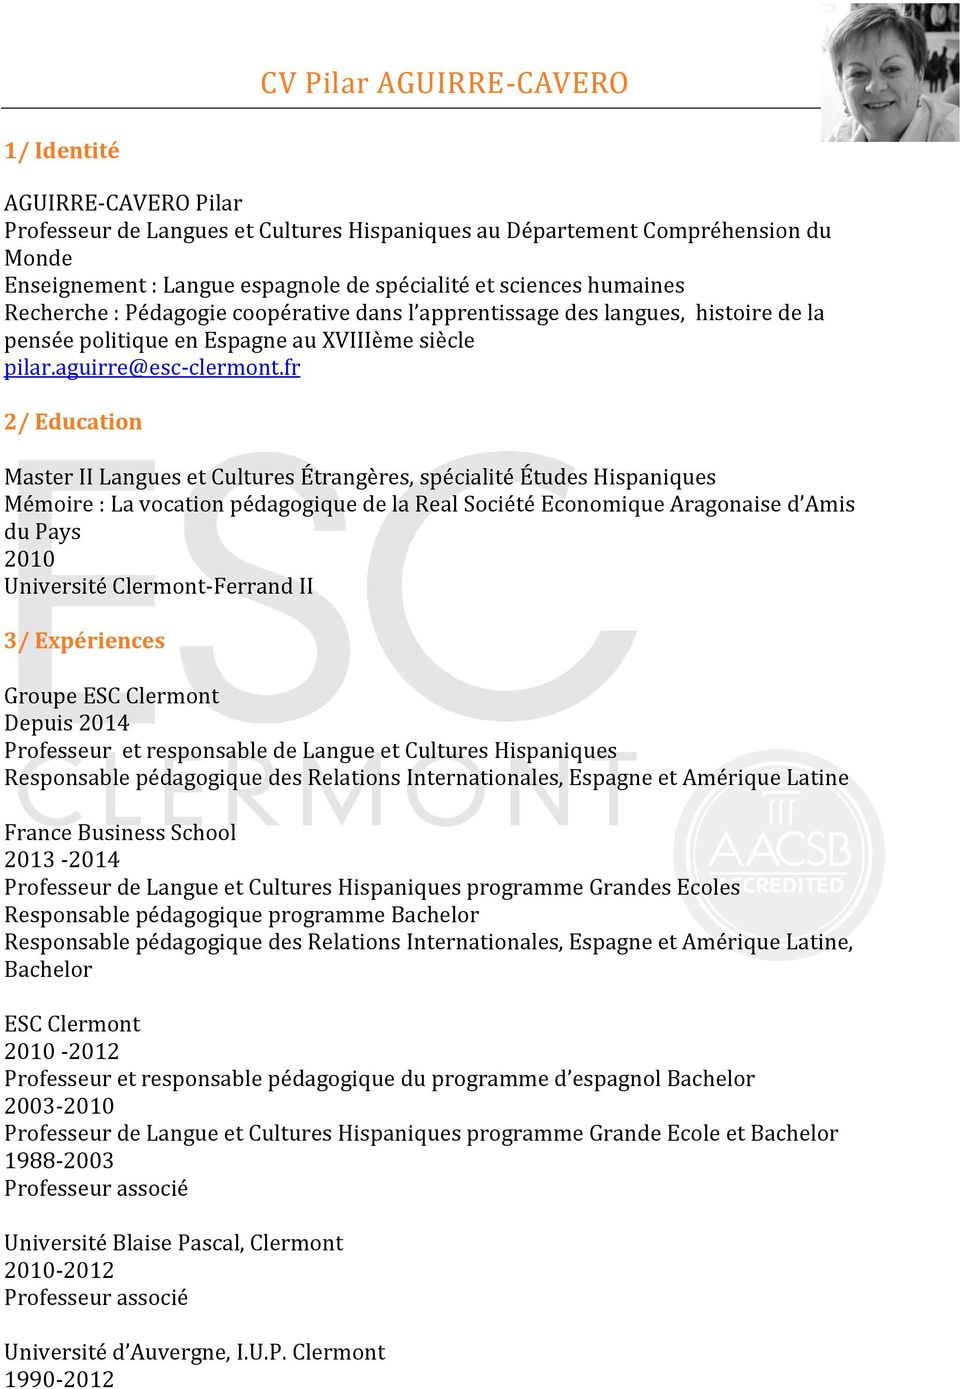 book cv professeurs permanents par departement